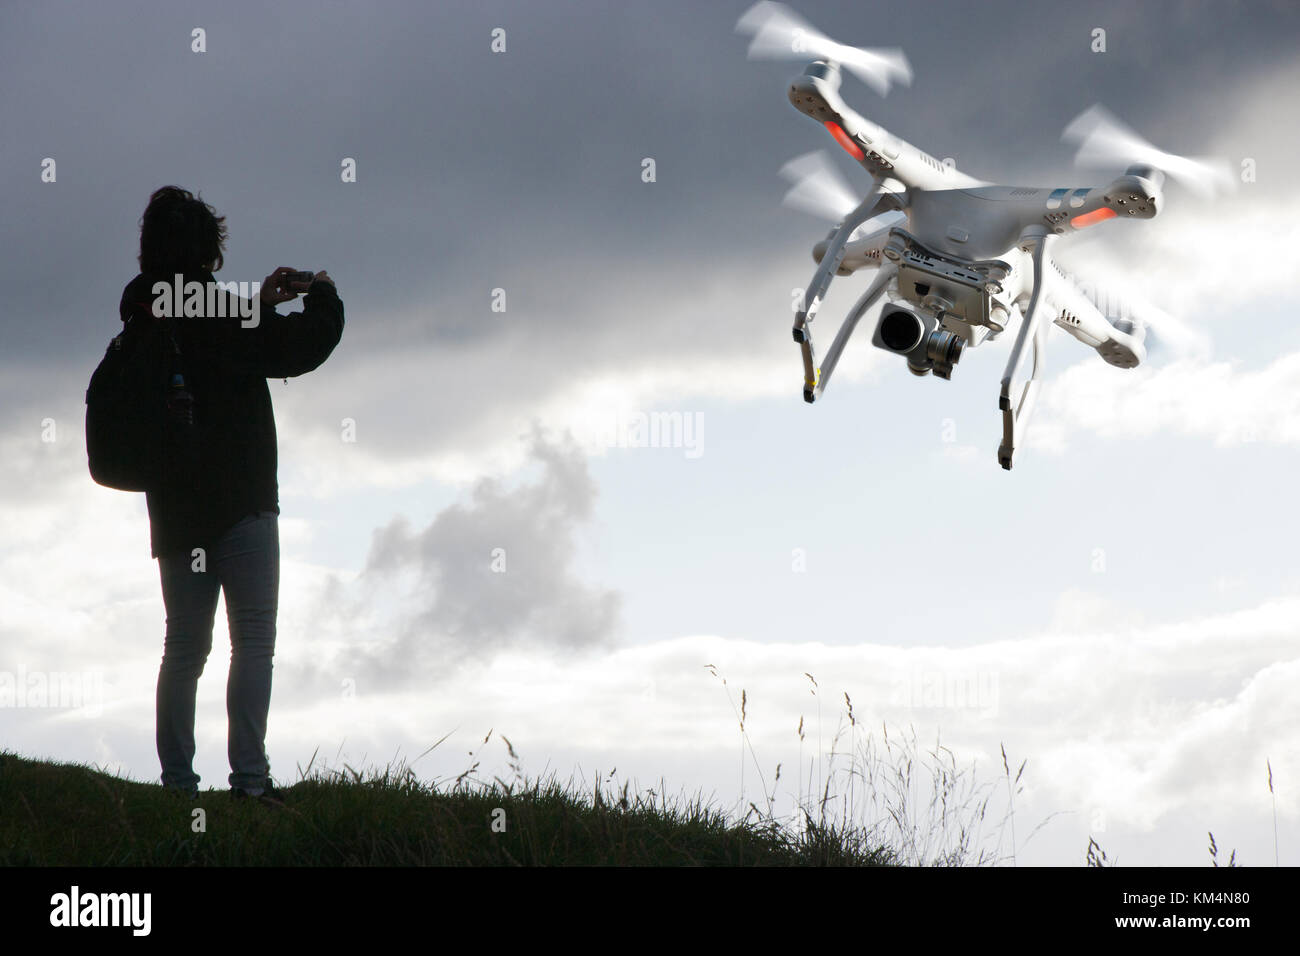 Flying drone with camera - Stock Image